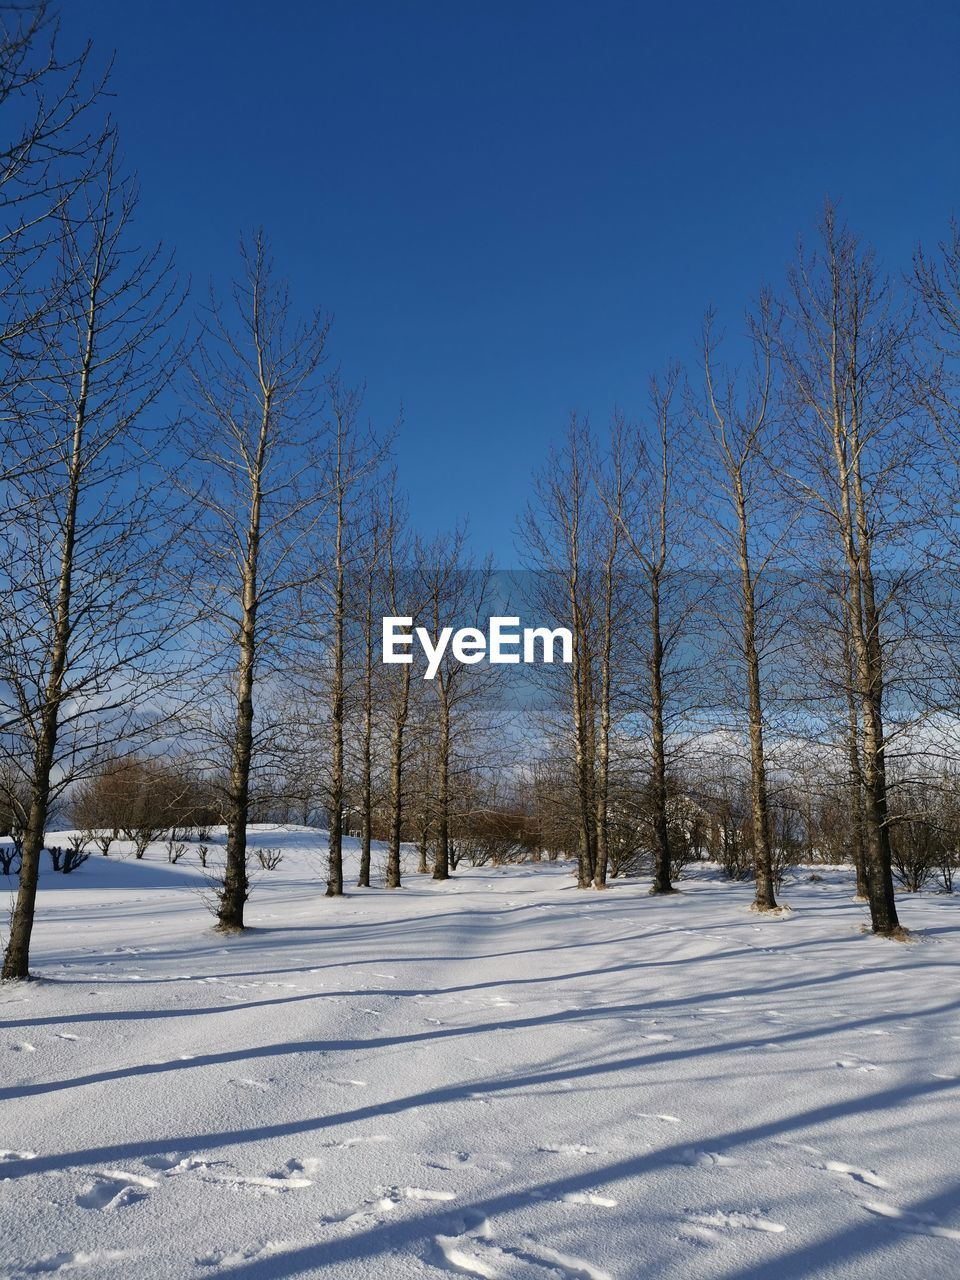 snow, winter, cold temperature, tree, sky, plant, white color, tranquility, beauty in nature, covering, bare tree, land, field, tranquil scene, no people, nature, scenics - nature, day, environment, outdoors